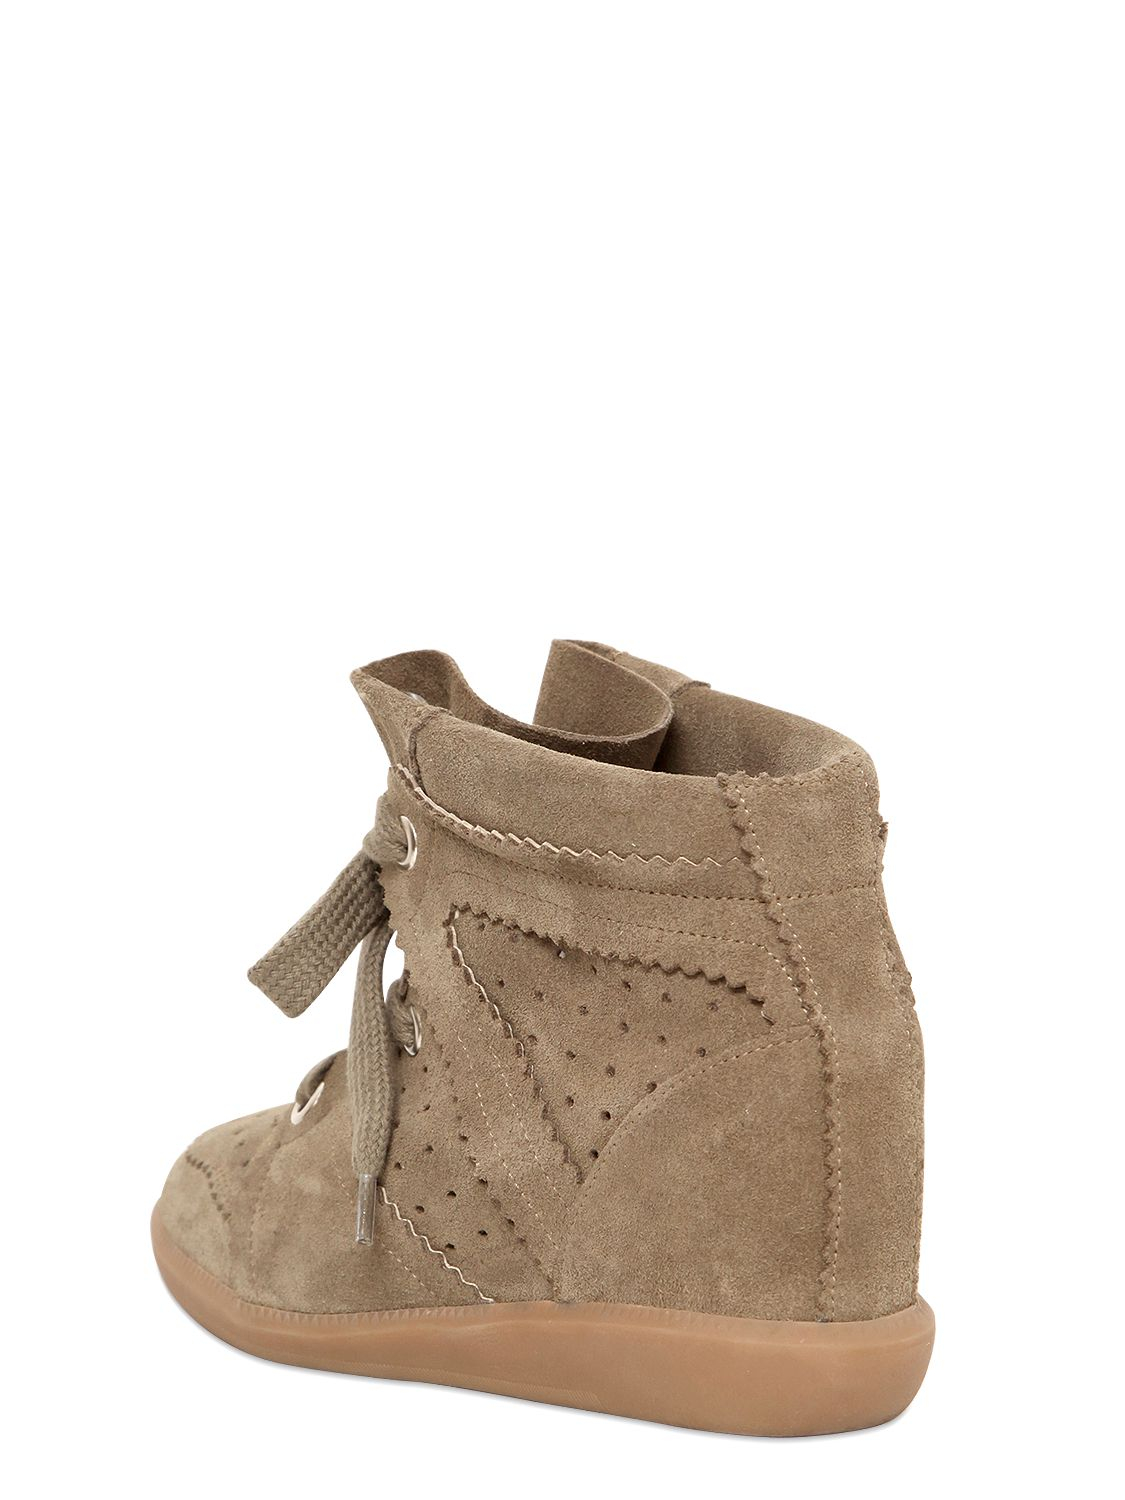 isabel marant etoile 80mm bobby suede wedge sneakers in. Black Bedroom Furniture Sets. Home Design Ideas